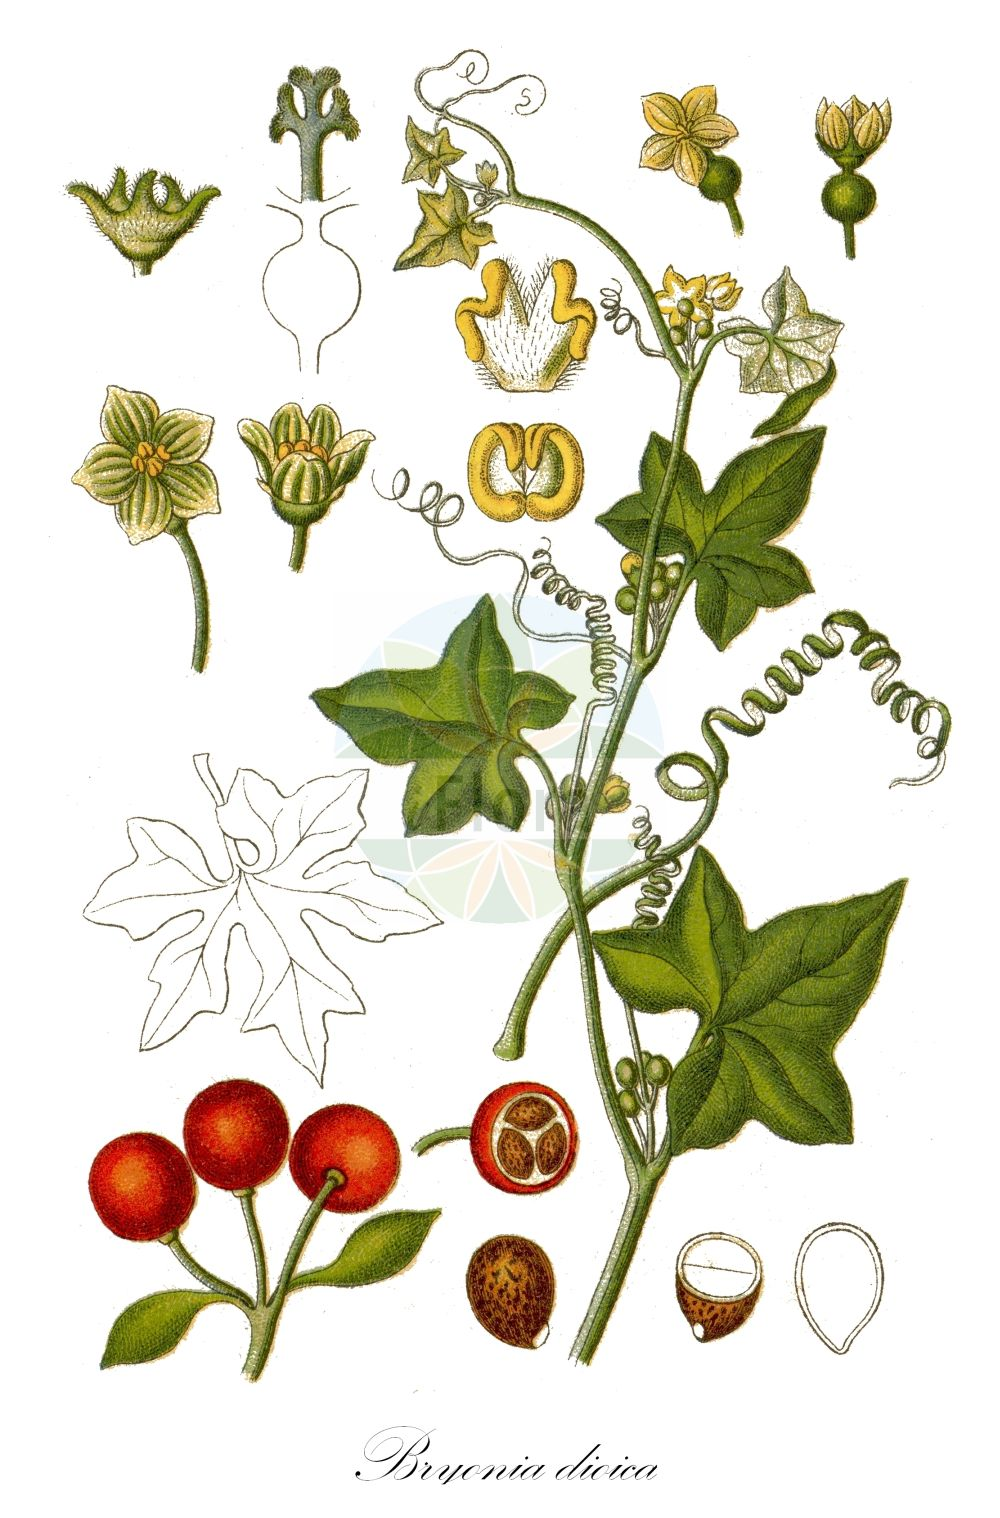 Historische Abbildung von Bryonia dioica (Rotfruechtige Zaunruebe - White Bryony). Das Bild zeigt Blatt, Bluete, Frucht und Same. ---- Historical Drawing of Bryonia dioica (Rotfruechtige Zaunruebe - White Bryony).The image is showing leaf, flower, fruit and seed.(Bryonia dioica,Rotfruechtige Zaunruebe,White Bryony,Bryonia digyna,Bryonia sicula,Rotbeerige Zaunruebe,Rote Zaunruebe,Common Bryony,Cretan Bryony,Red-berried Bryony,Red-berry Bryony,Red Bryony,Bryonia,Zaunruebe,Bryony,Cucurbitaceae,Kuerbisgewaechse,Cucurbit family,Blatt,Bluete,Frucht,Same,leaf,flower,fruit,seed,Sturm (1796f))